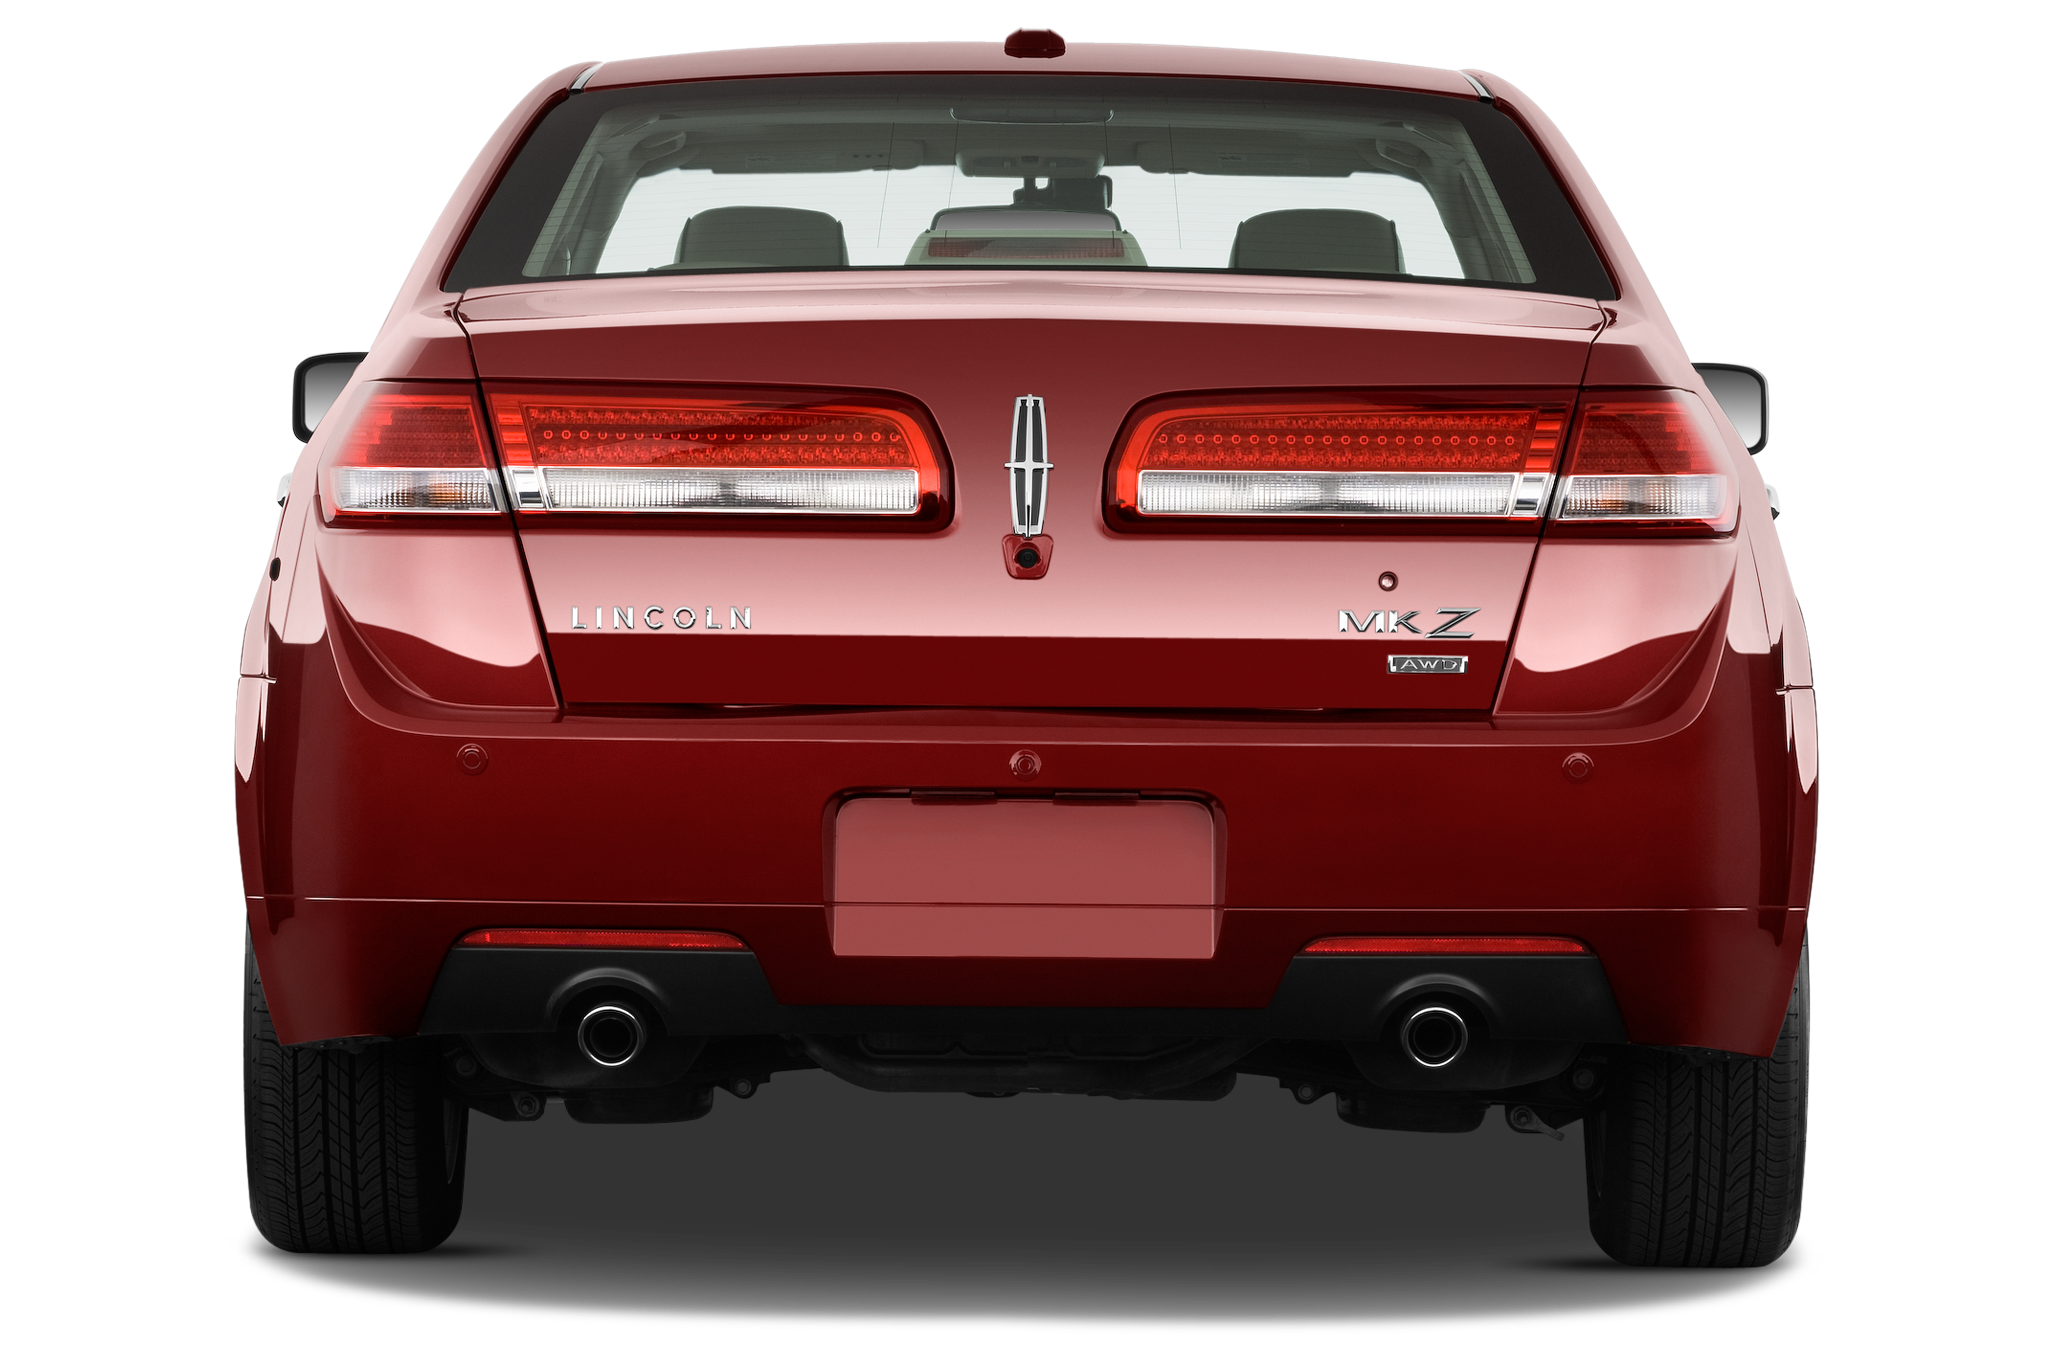 https://st.automobilemag.com/uploads/sites/10/2015/11/2010-lincoln-mkz-awd-sedan-rear-view.png